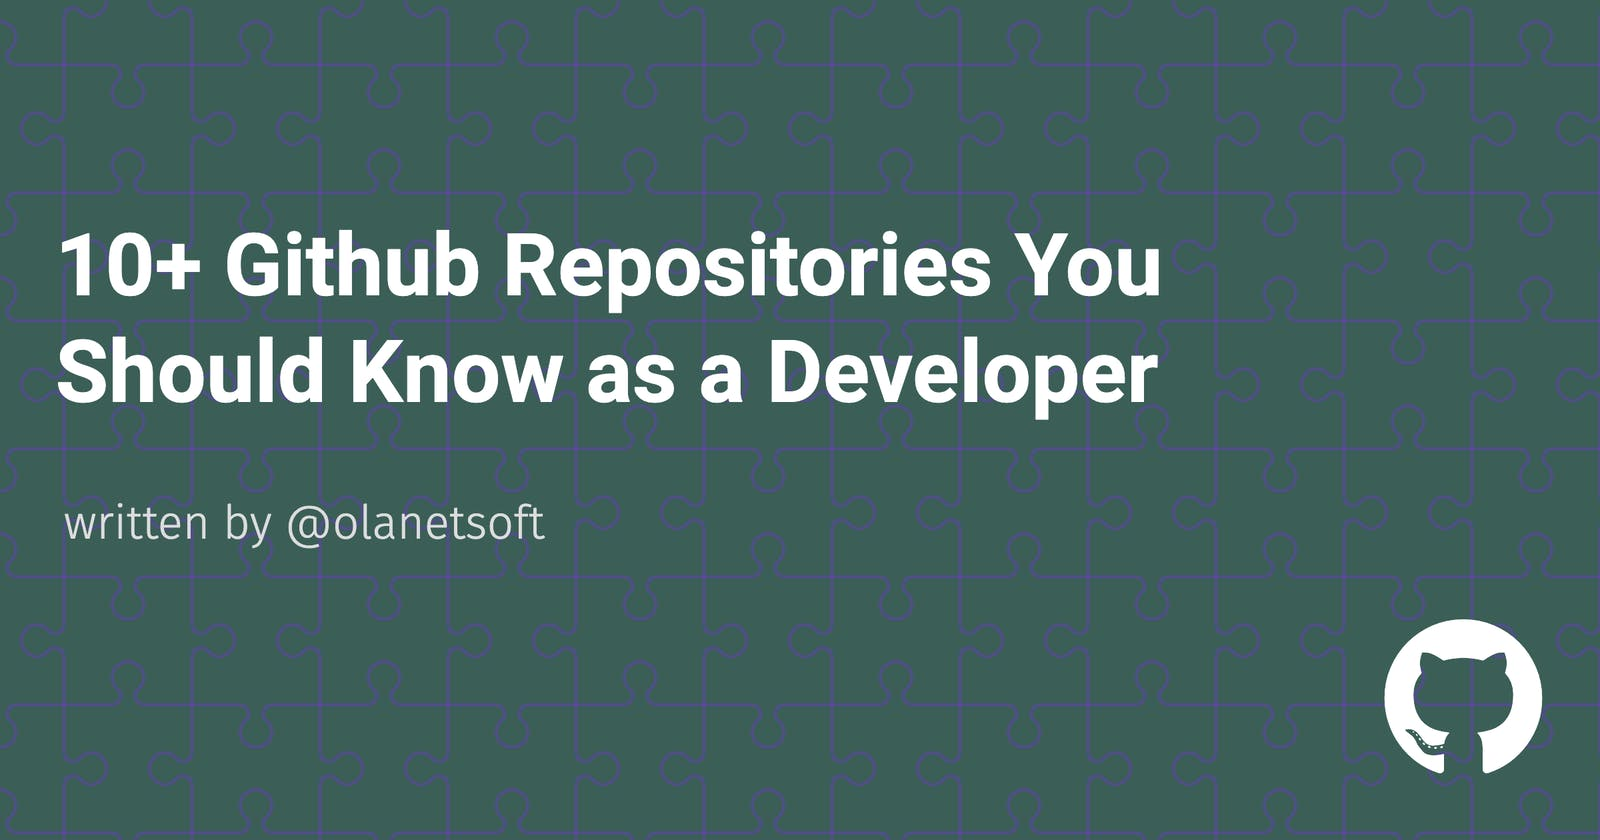 10+ Github Repositories You Should Know as a Developer